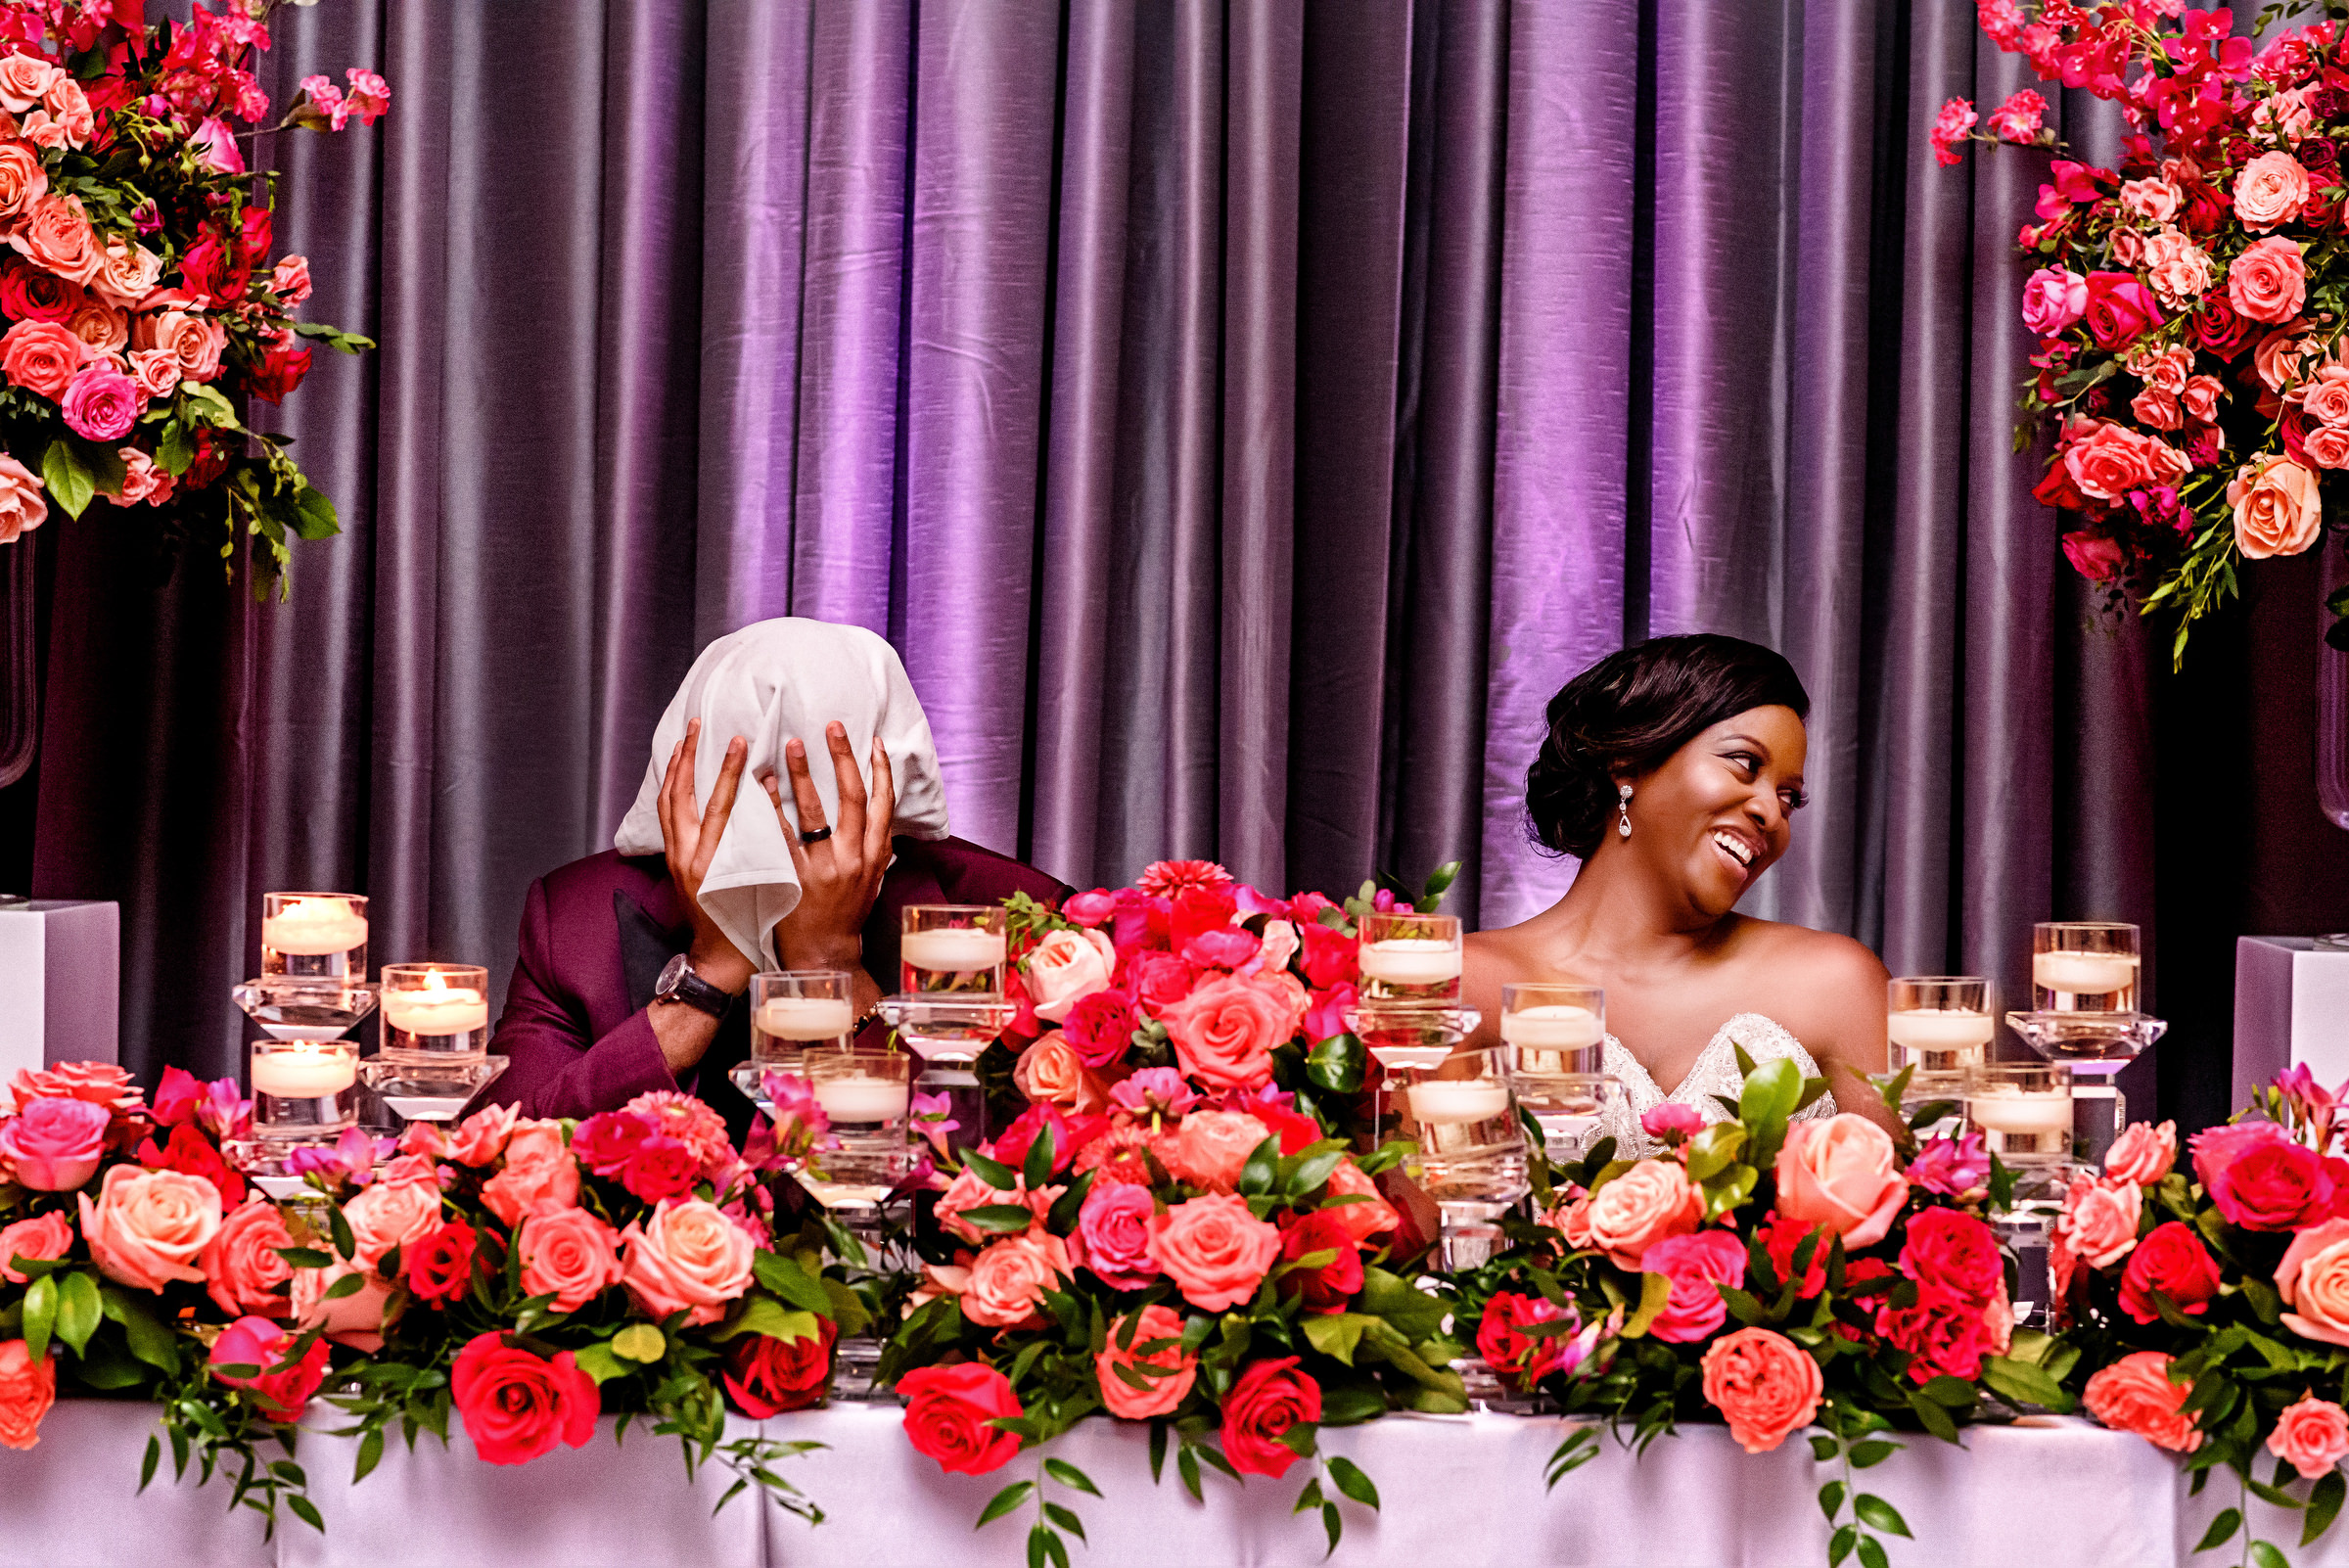 Groom covers his face during toast - photo by Kirth Bobb Photography DC